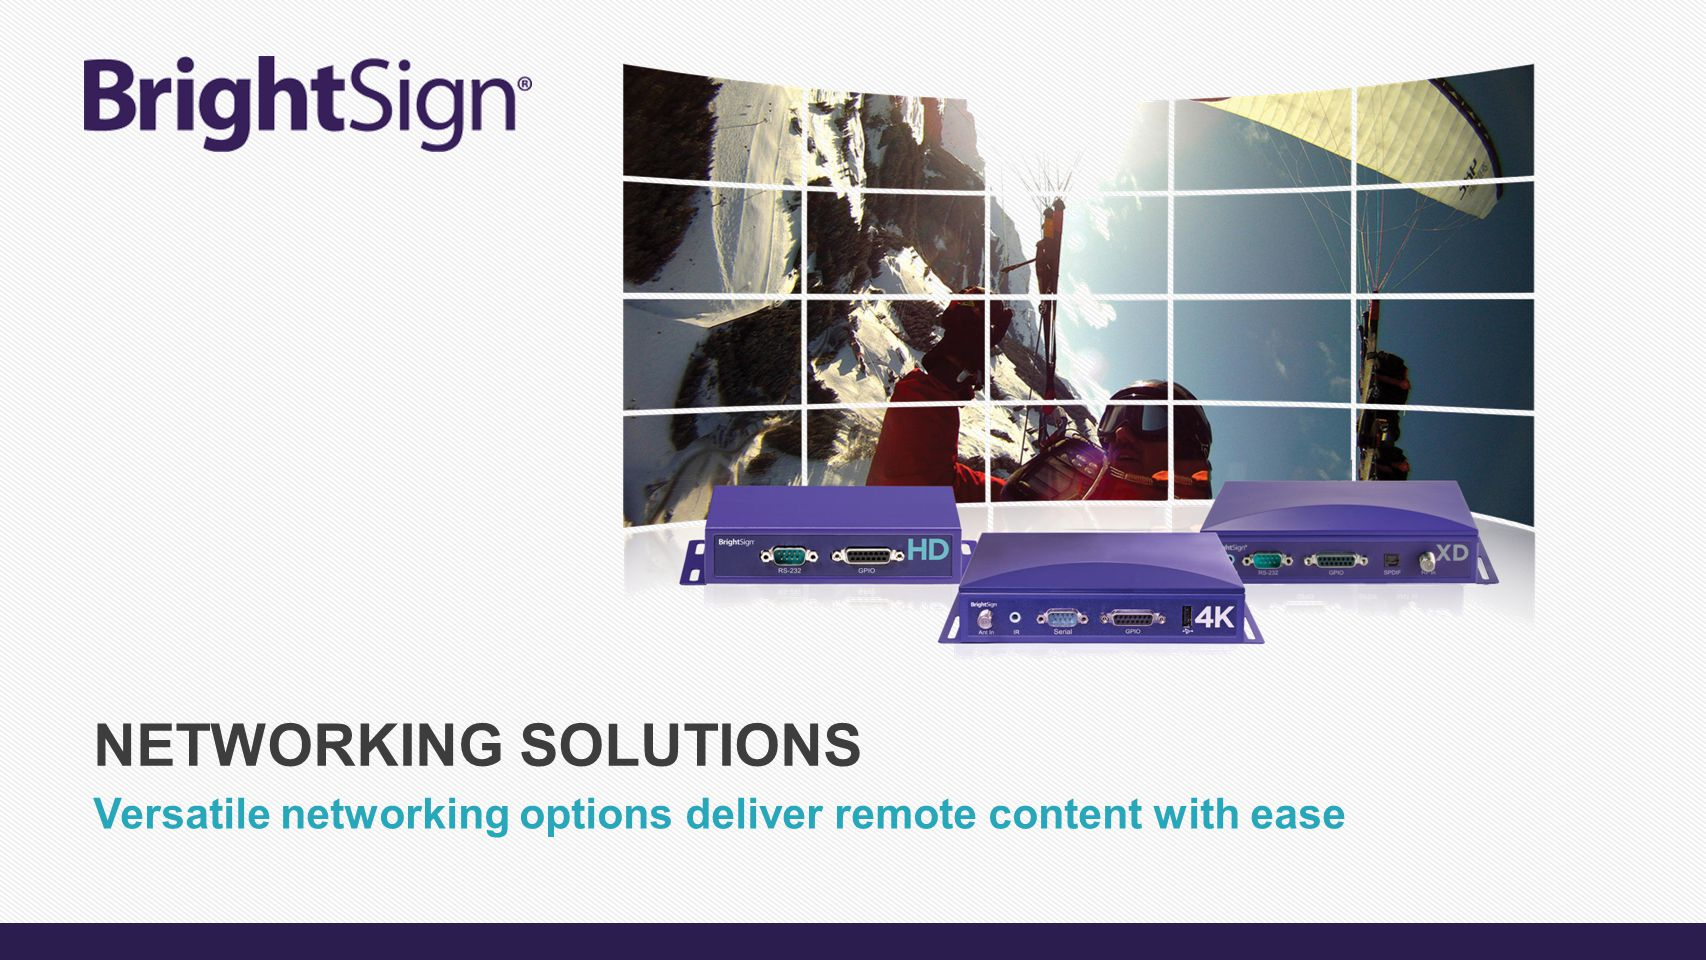 Versatile networking options deliver remote content with ease NETWORKING SOLUTIONS